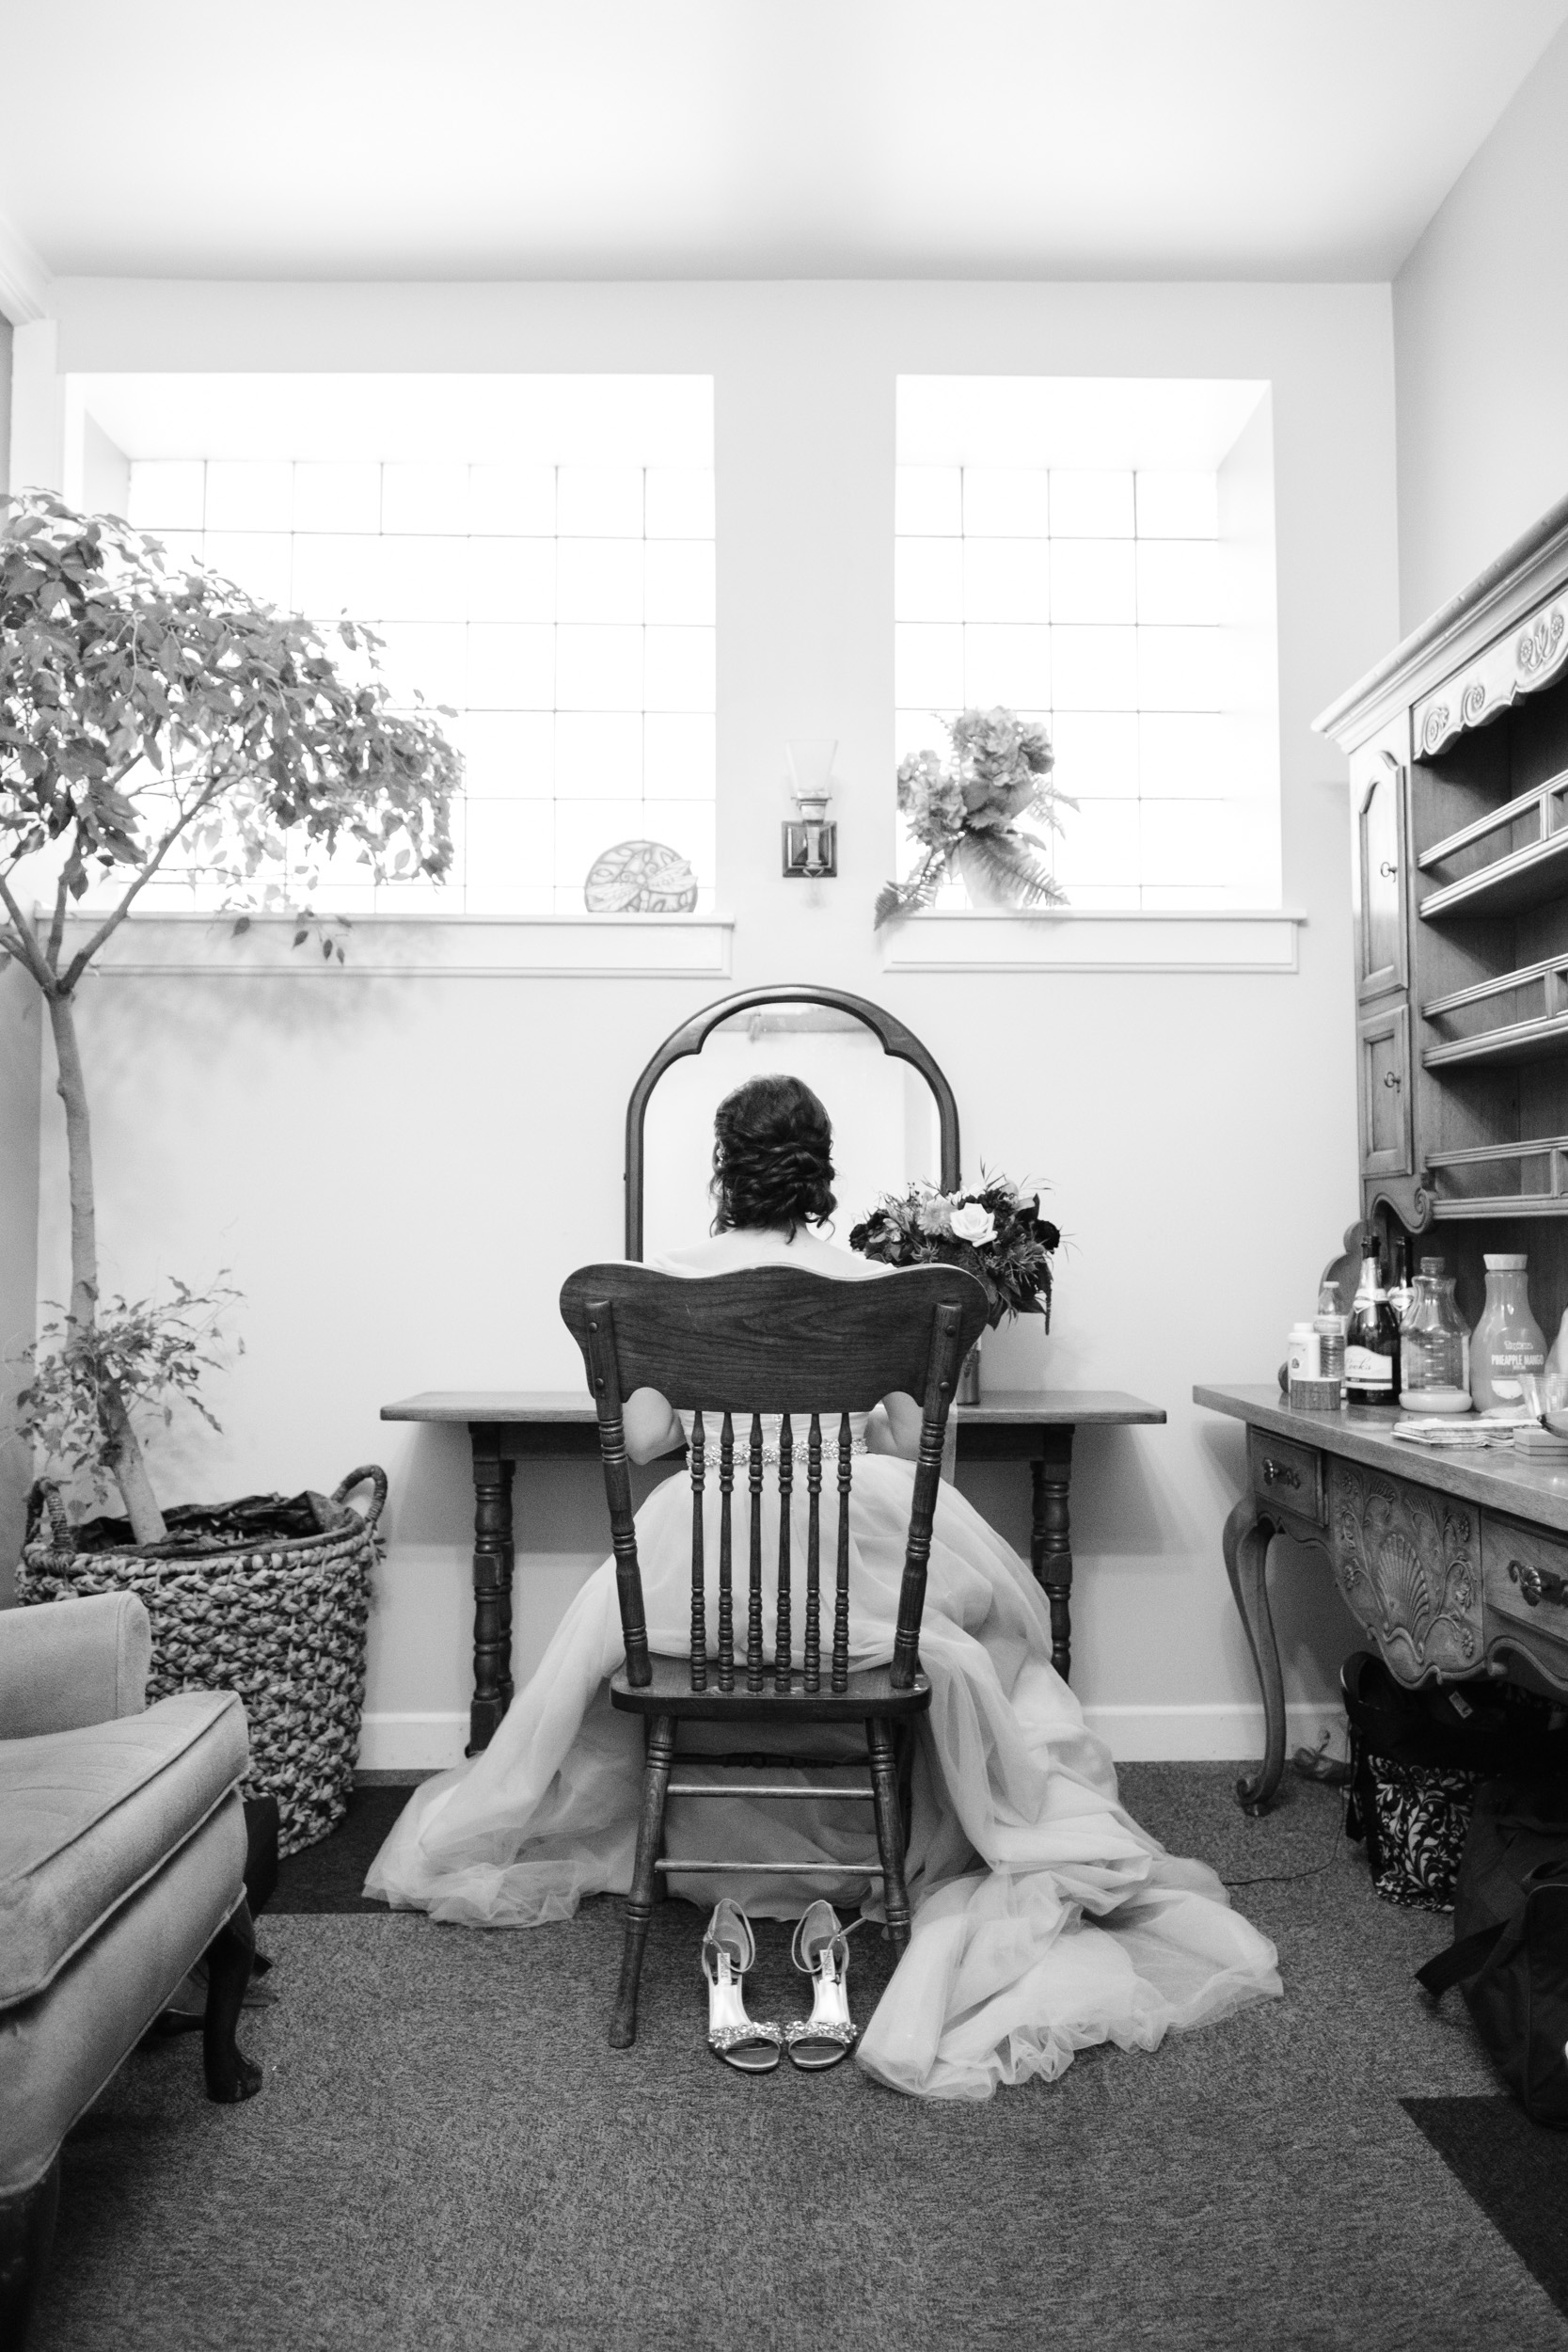 Bride getting ready in rocking chair at Pabst BEst place by rockford wedding photographer b. adams photography